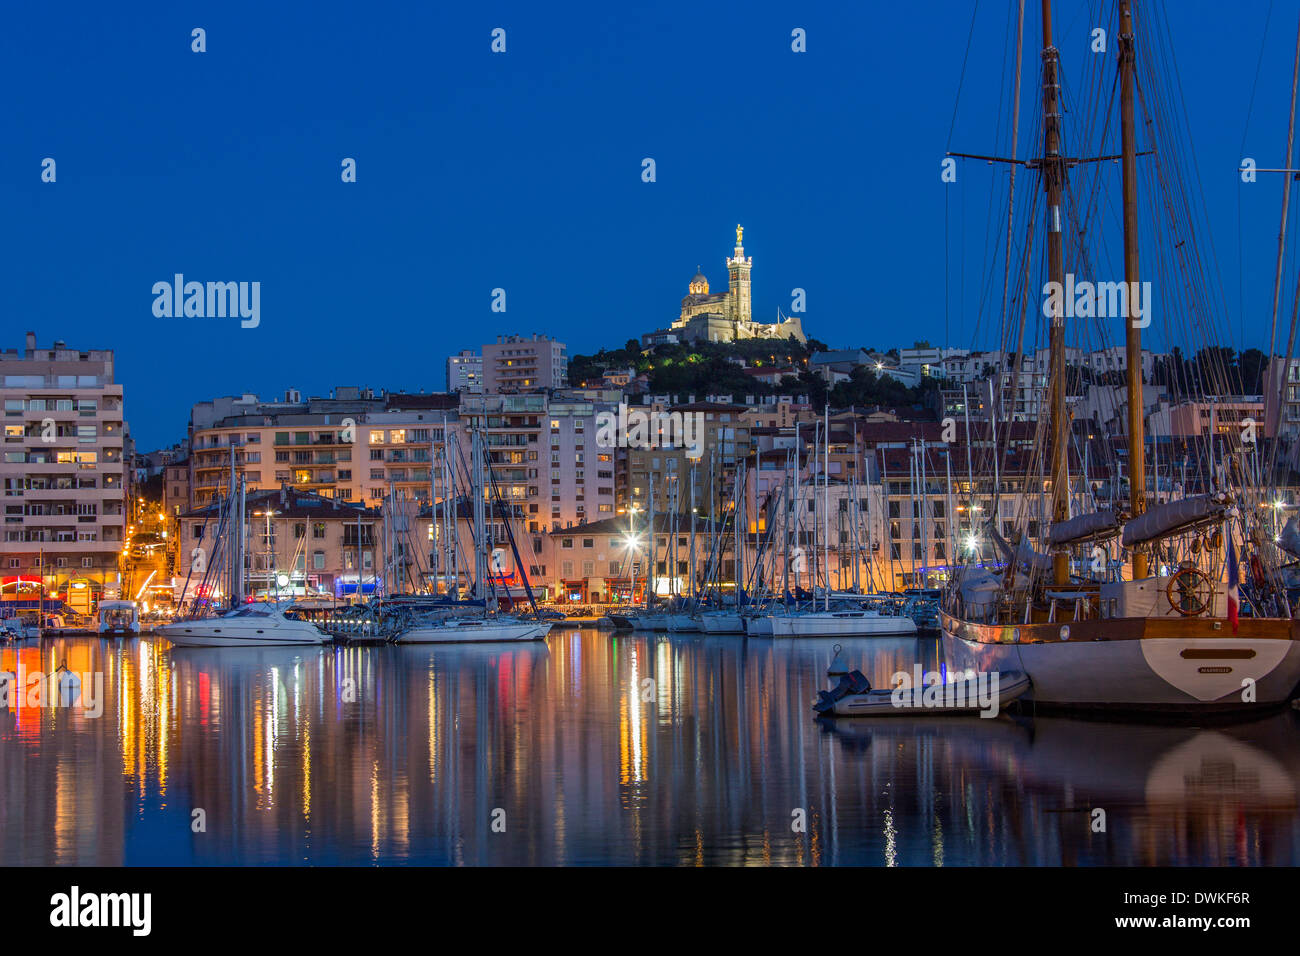 The harbor of Marseille at night - South of France - Stock Image